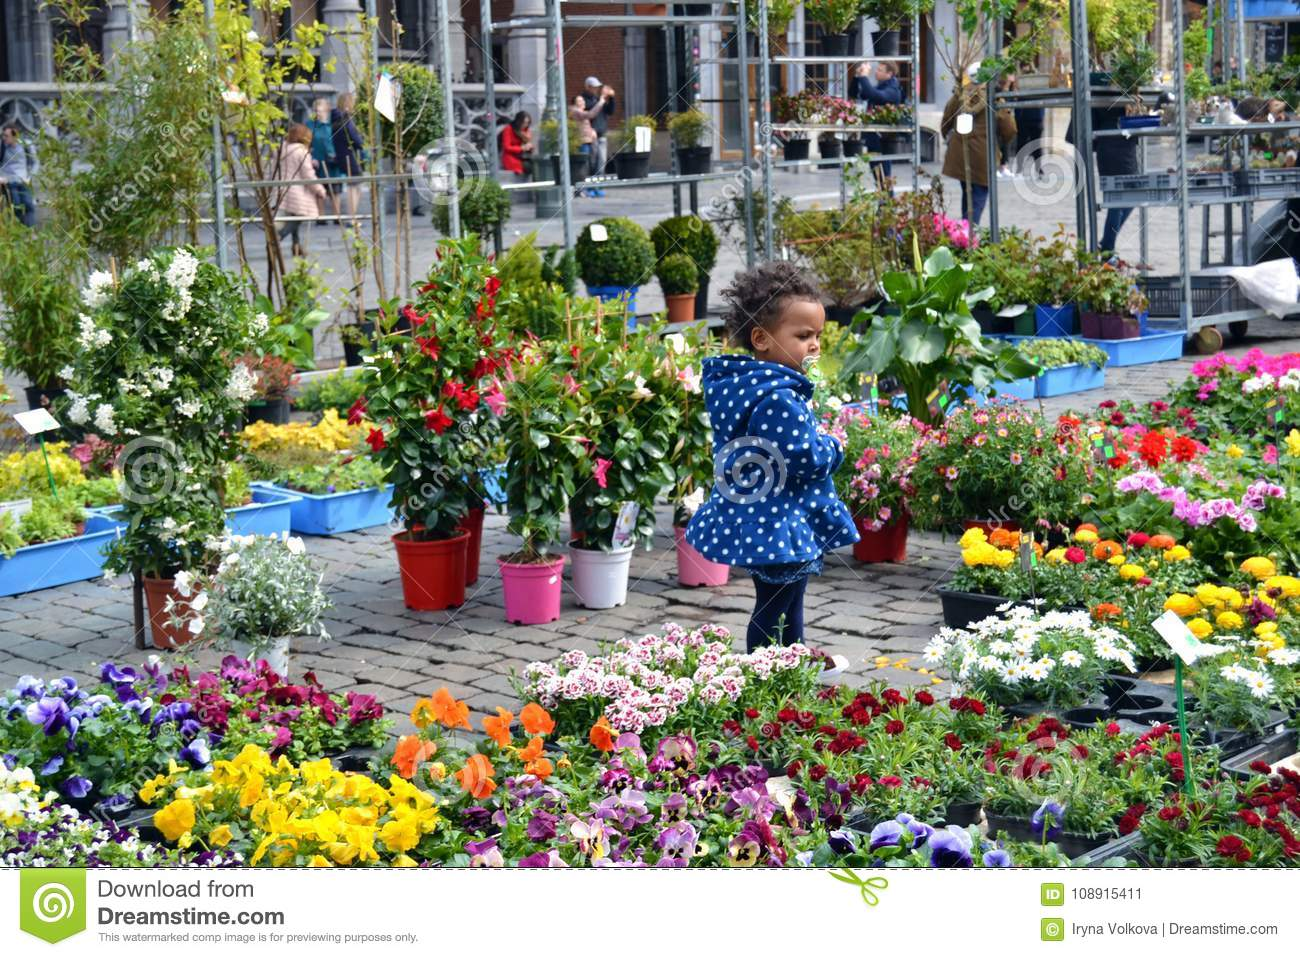 Kid surrounded with flowers on the street